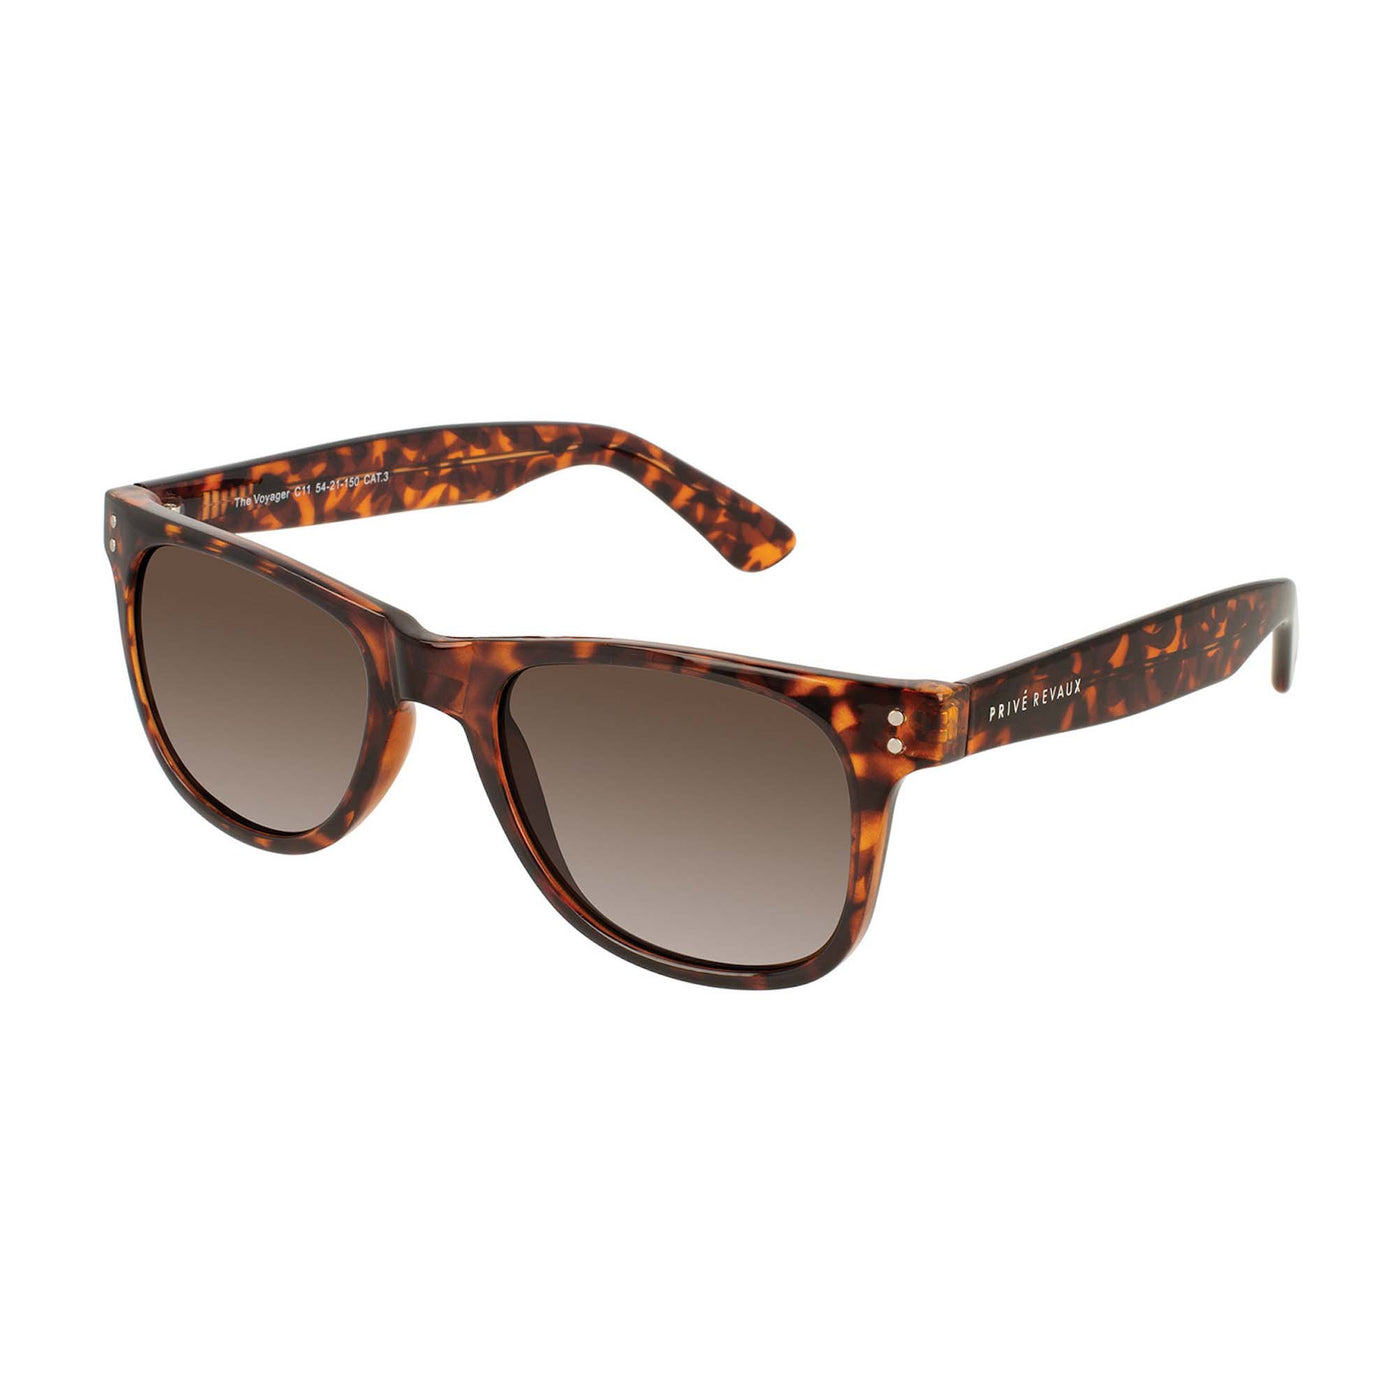 Sunglass Prive Voyager